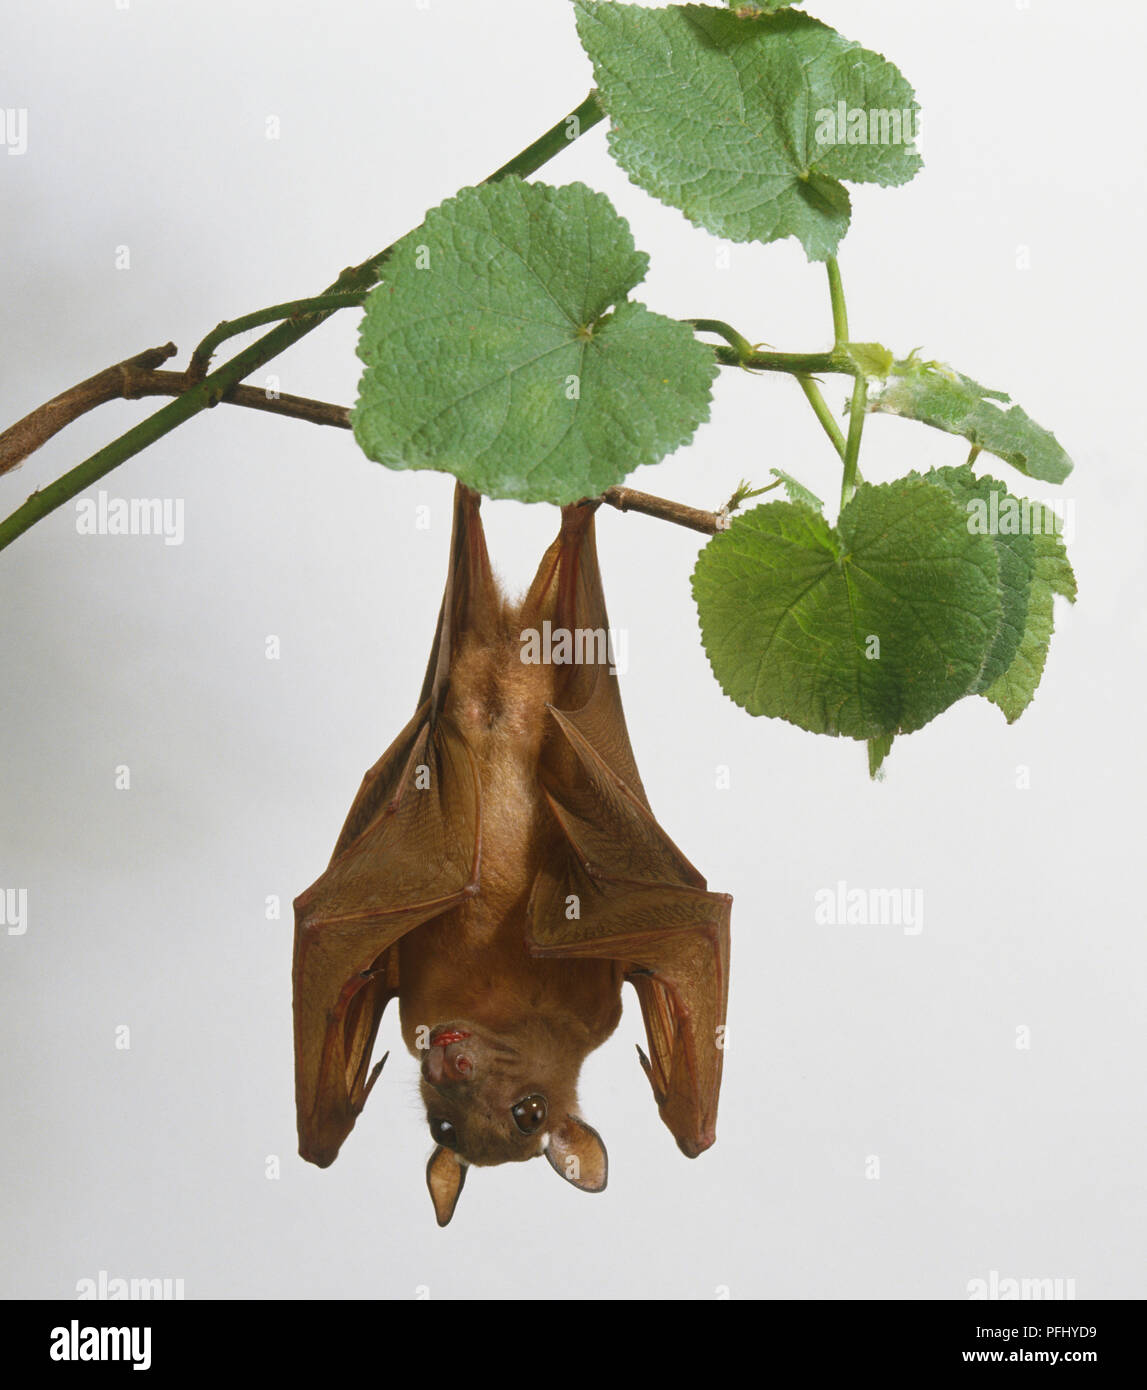 Bat (Chiroptera sp.) hanging upside down from flowering plant, front view. Stock Photo